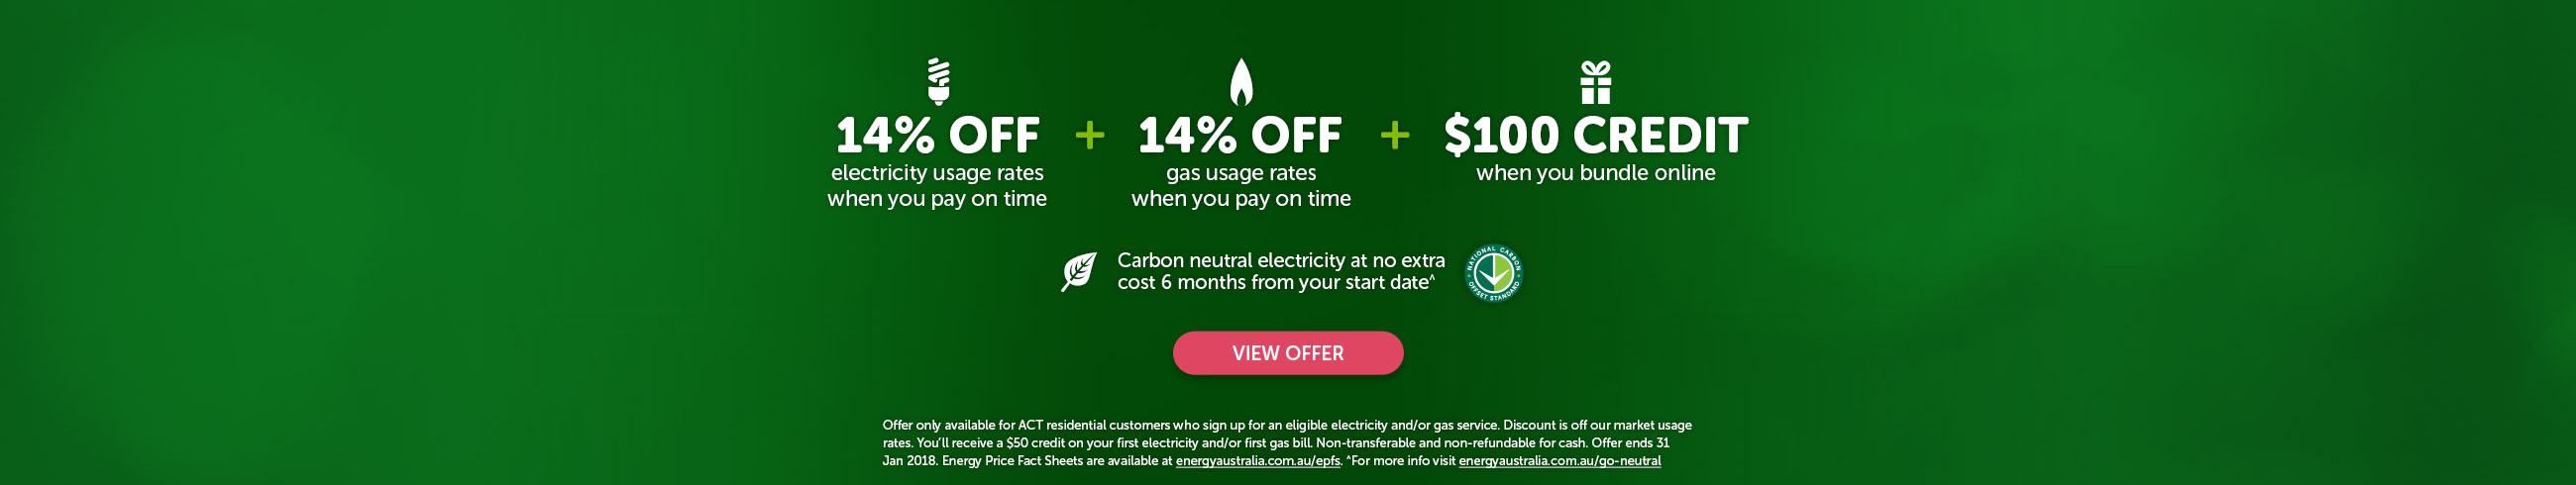 14% off electricity usage rates when you pay on time plus 14% off gas usage rates when you pay on time plus $100 credit when you bundle online. Carbon neutral electricity at no extra cost 6 months from your start date^